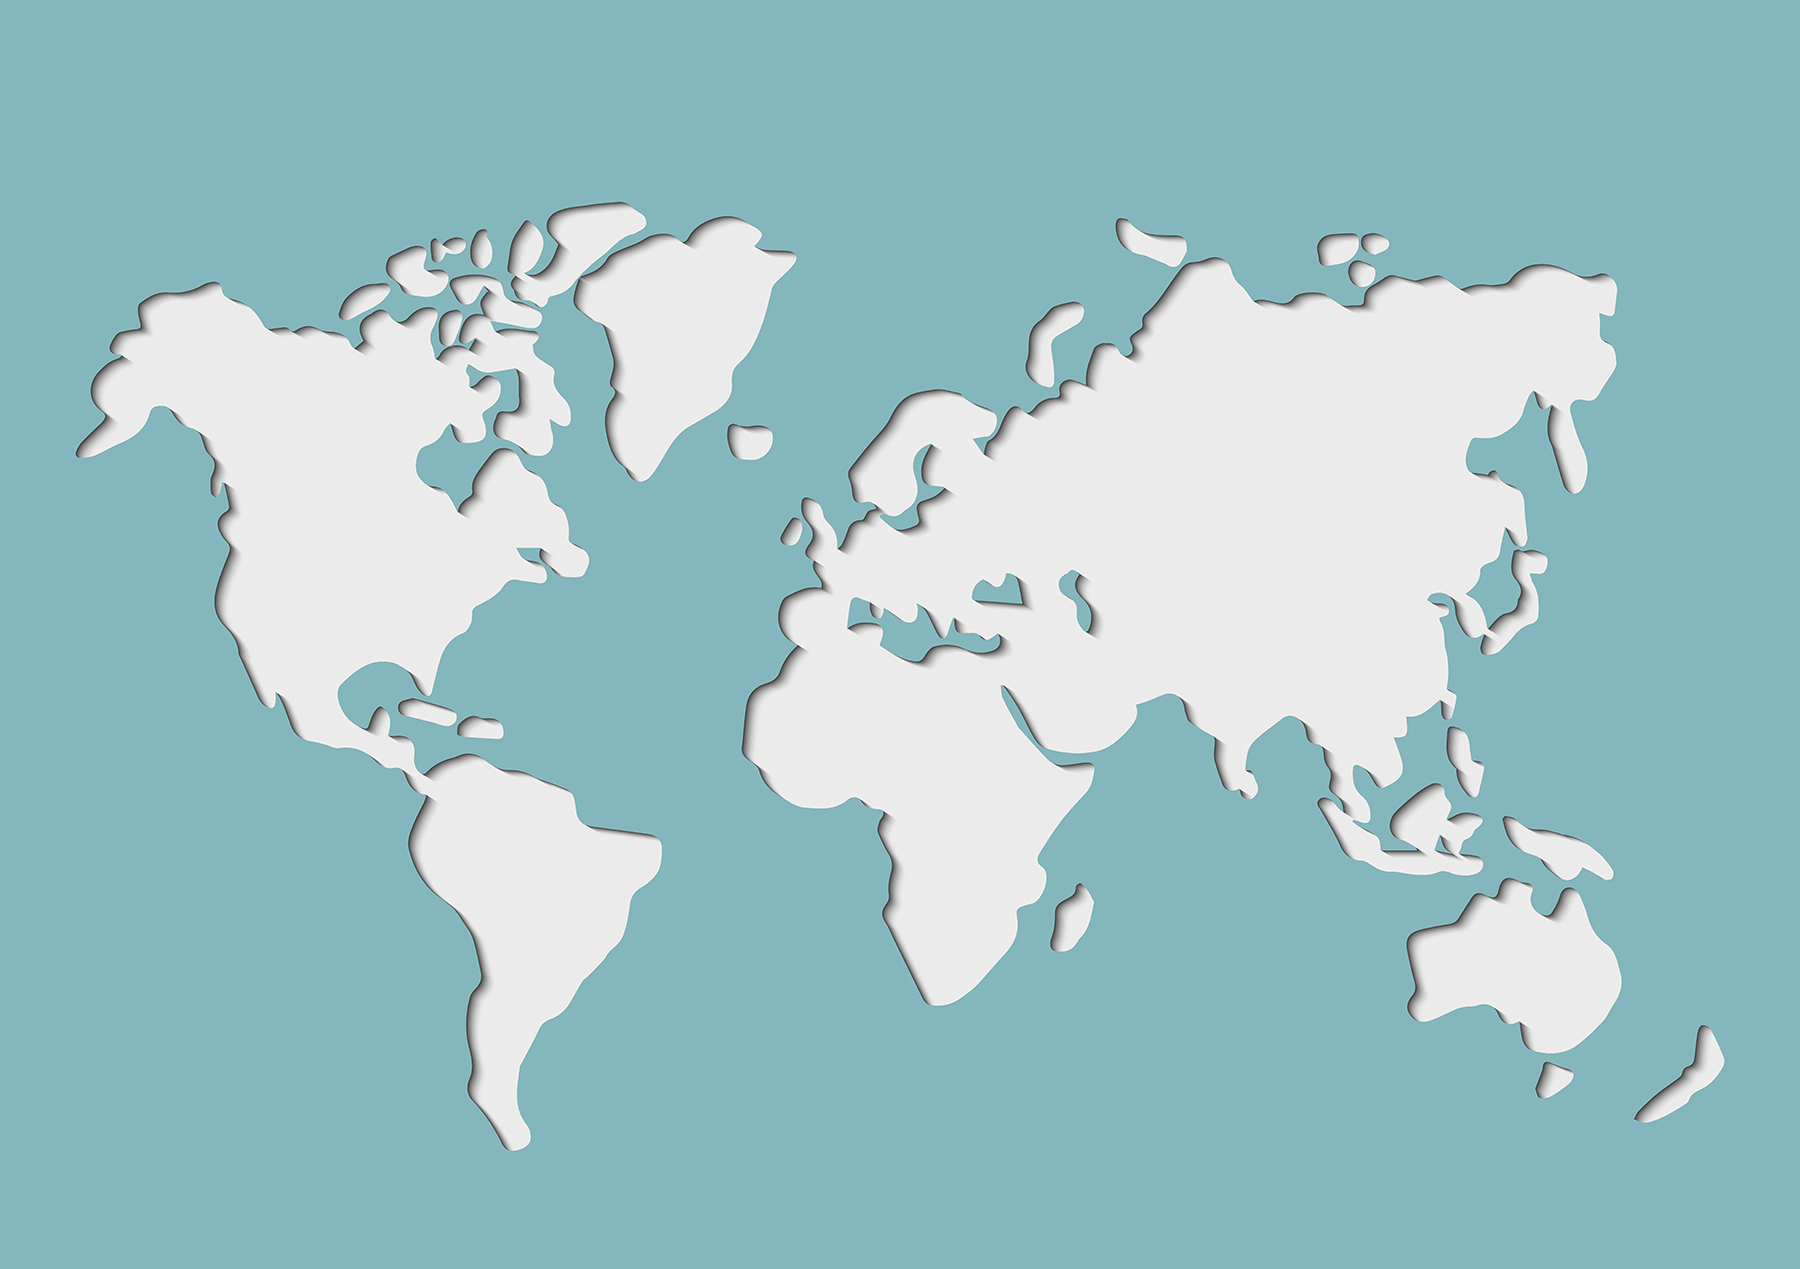 Paper Cut style of map